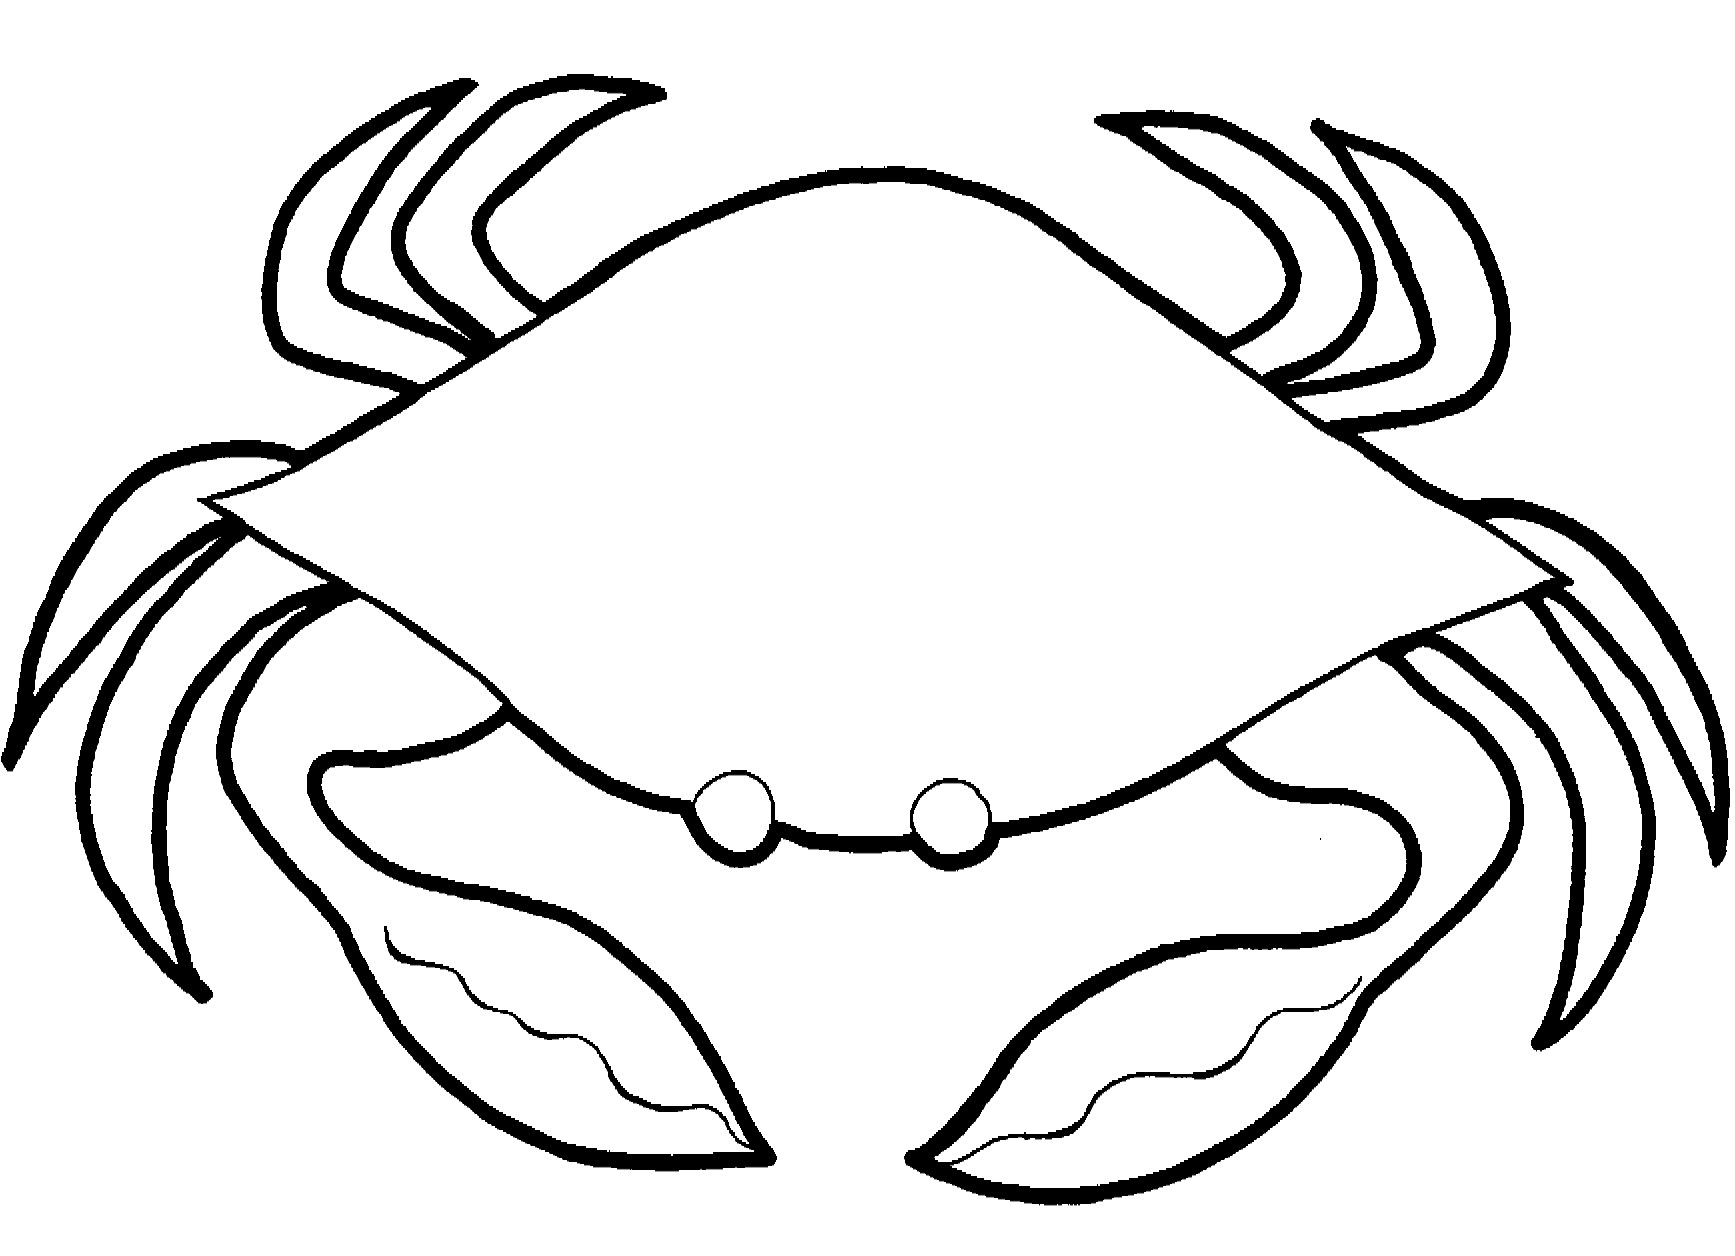 Exoskeleton Bud S 16 Crab Coloring Pages